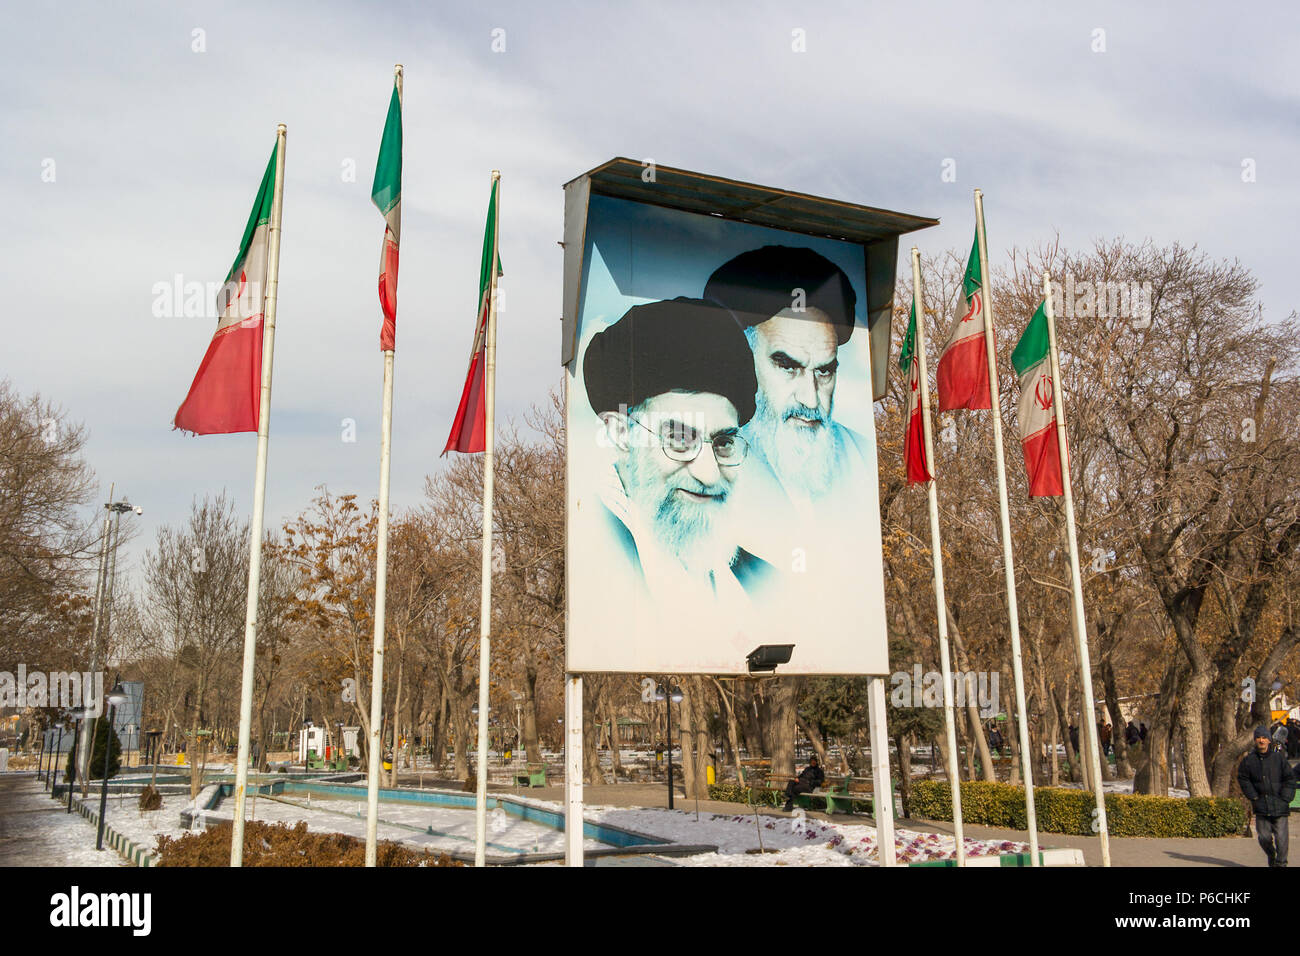 Images of Ali Khamenei, Supreme Leader of the Islamic Revolution and Ruhollah Khomeini on a billboard flanked my flag poles with the Iranian flag at t - Stock Image